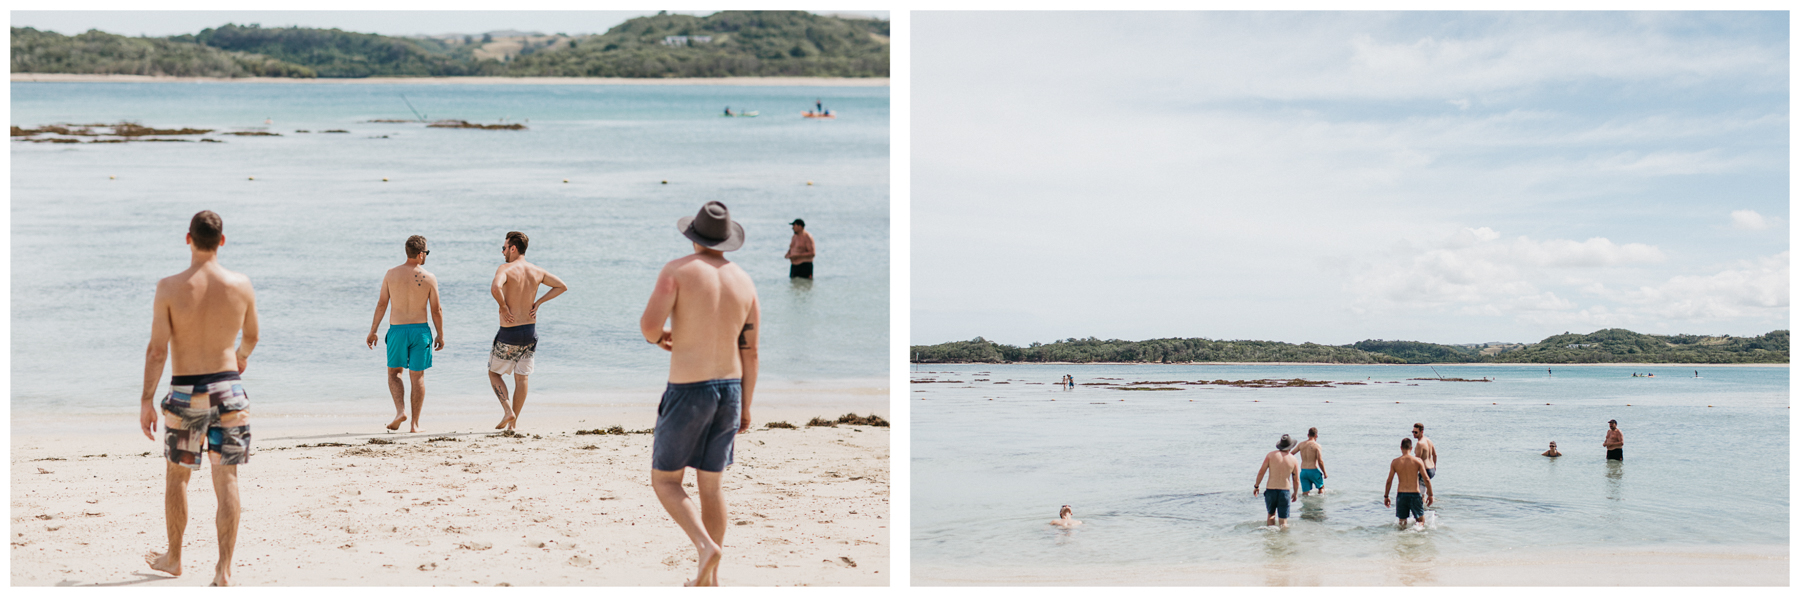 Sam+Bowen-destination-fiji-wedding-coral-coast-shangrila-172